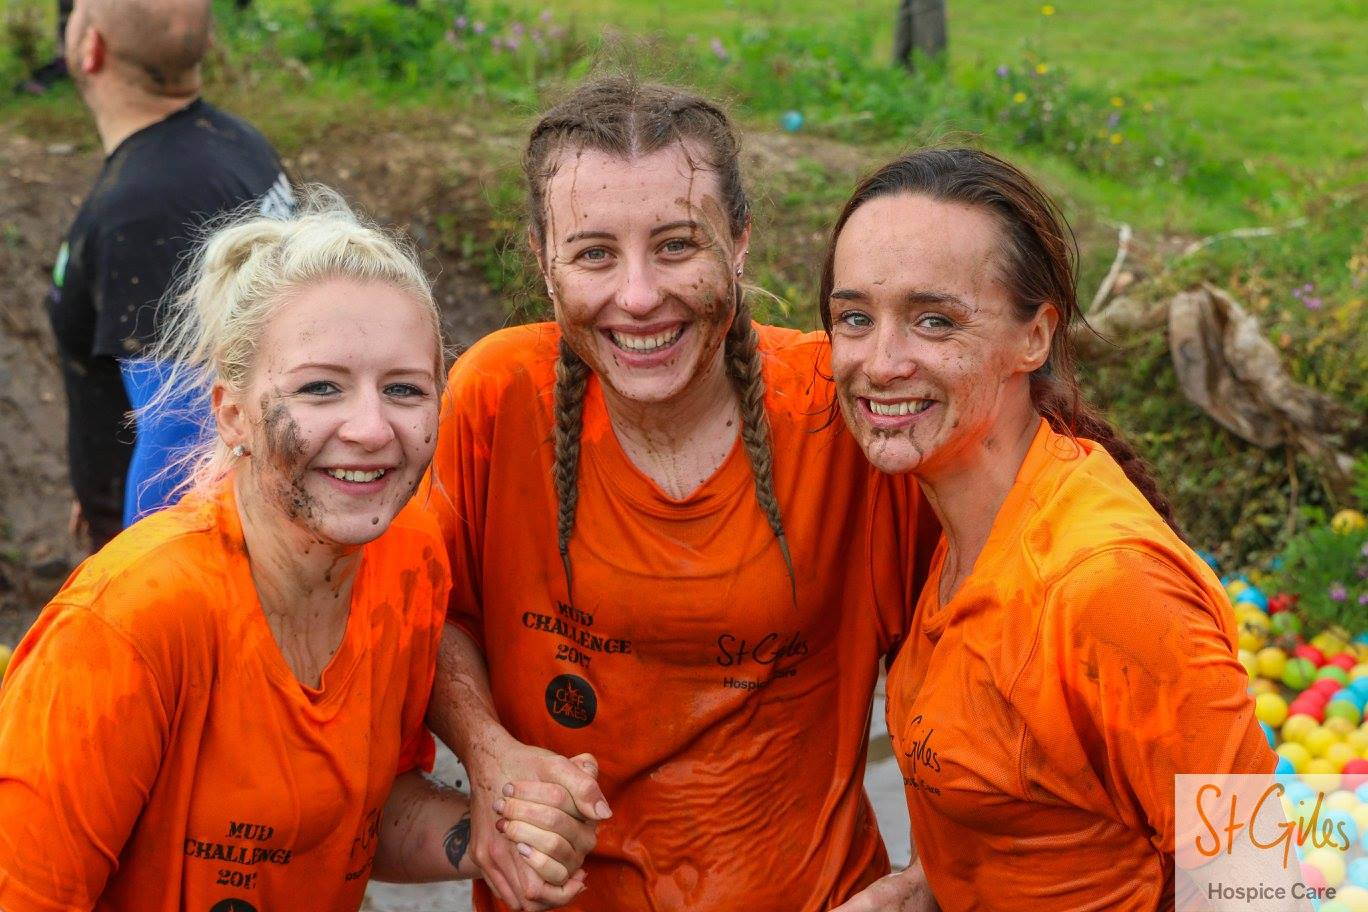 Make a splash at St Giles Hospice Mud Challenge